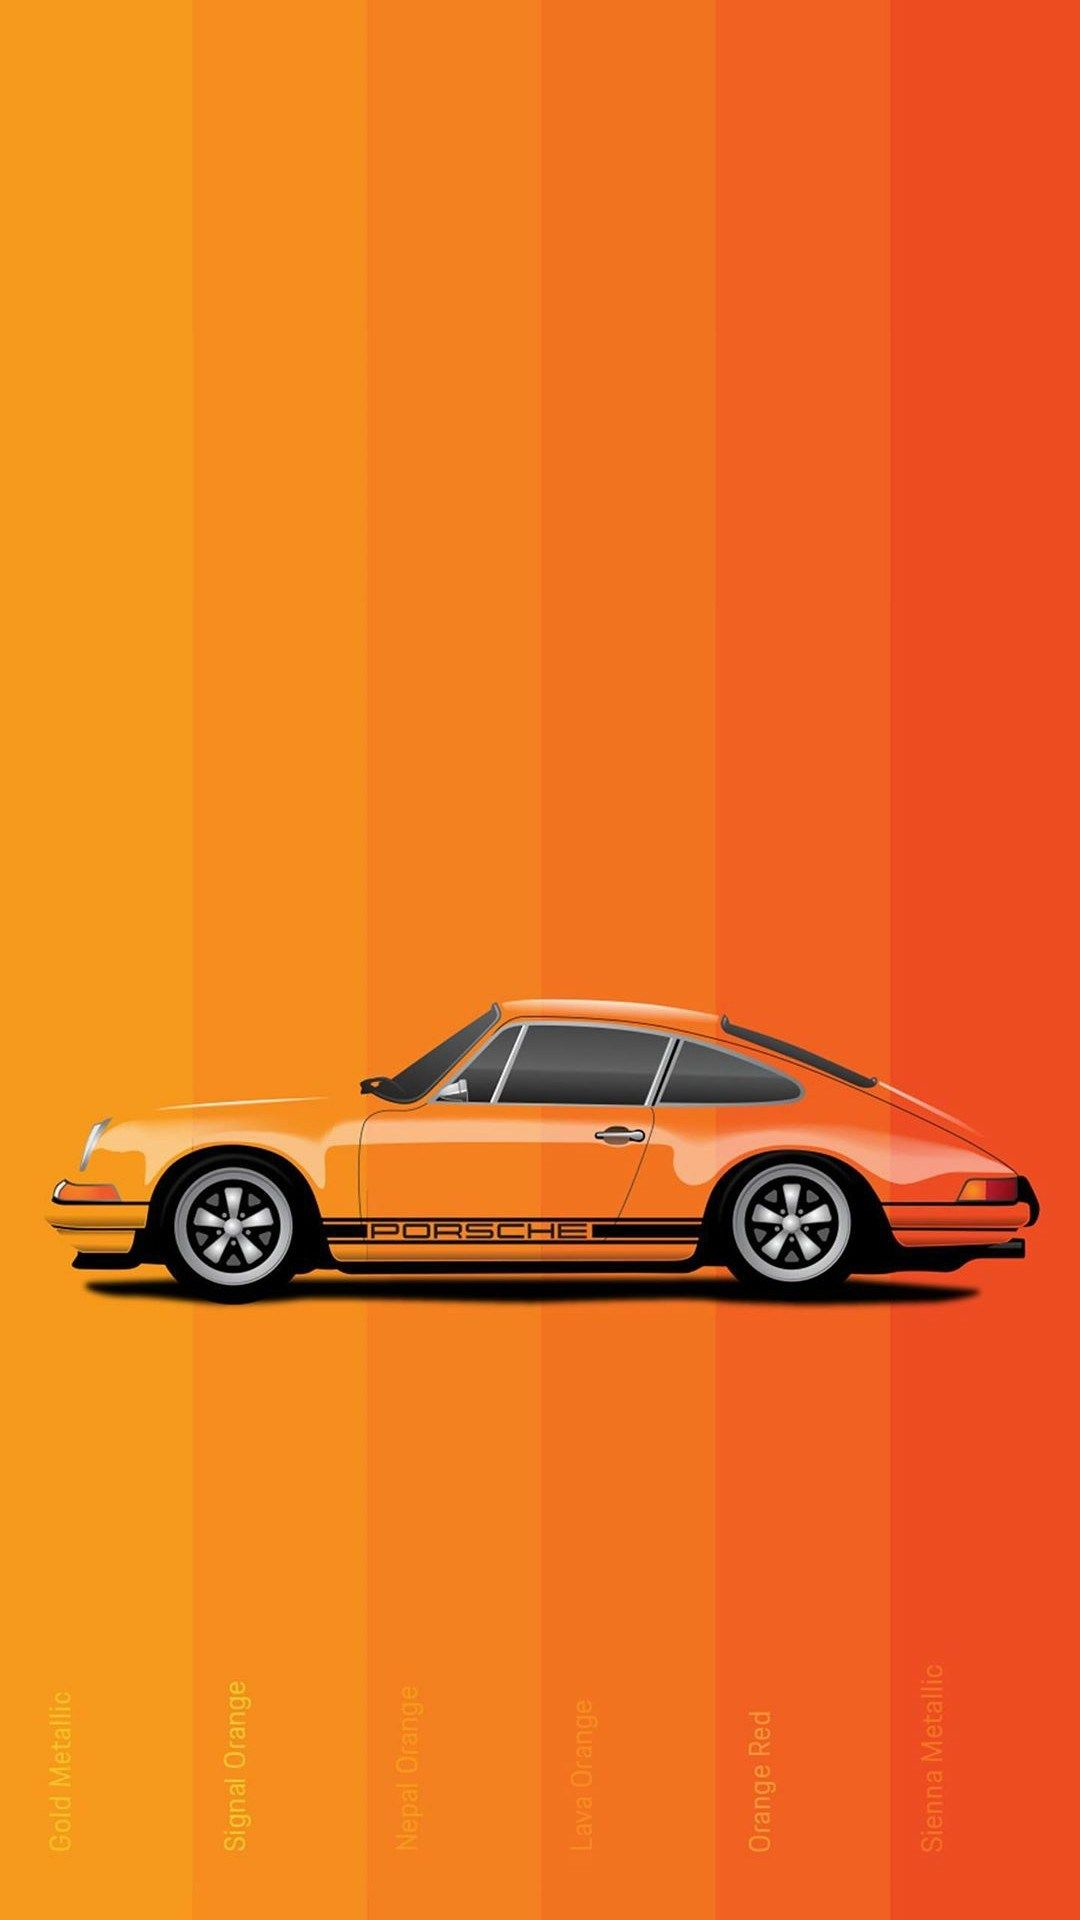 High Resolution Ultra Hd 4k Minimal Mobile Wallpapers Download In 2021 Car Wallpapers Porsche Cars Car Iphone Wallpaper